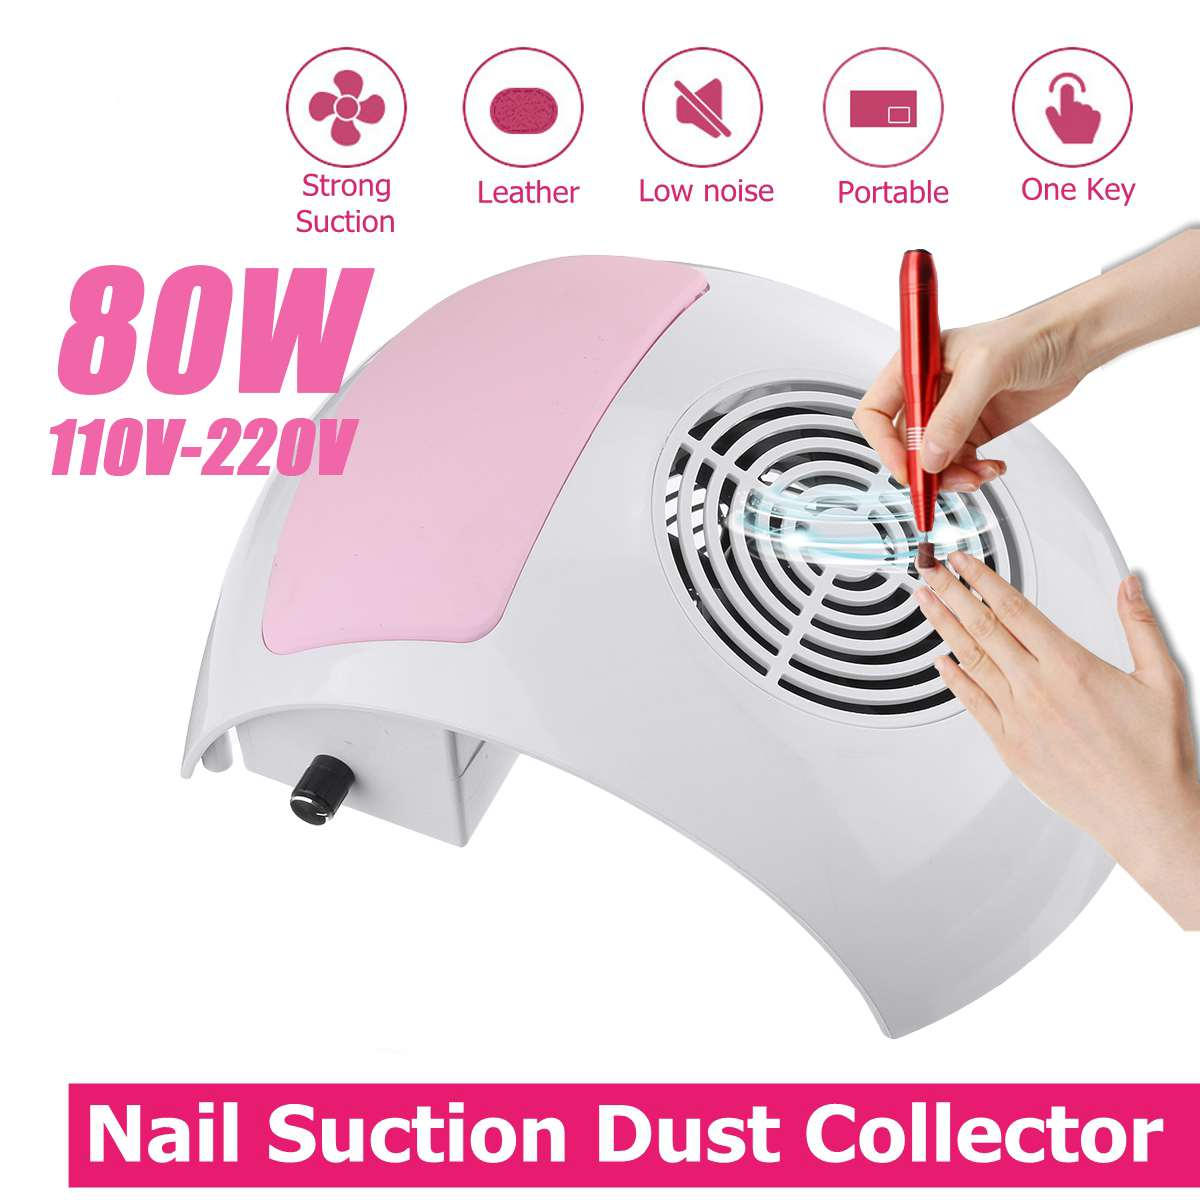 80W Nail Dust Suction Dust Collector Fan Vacuum Cleaner Manicure Machine Tools Strong Power Nail Fan Art Manicure Salon Tools